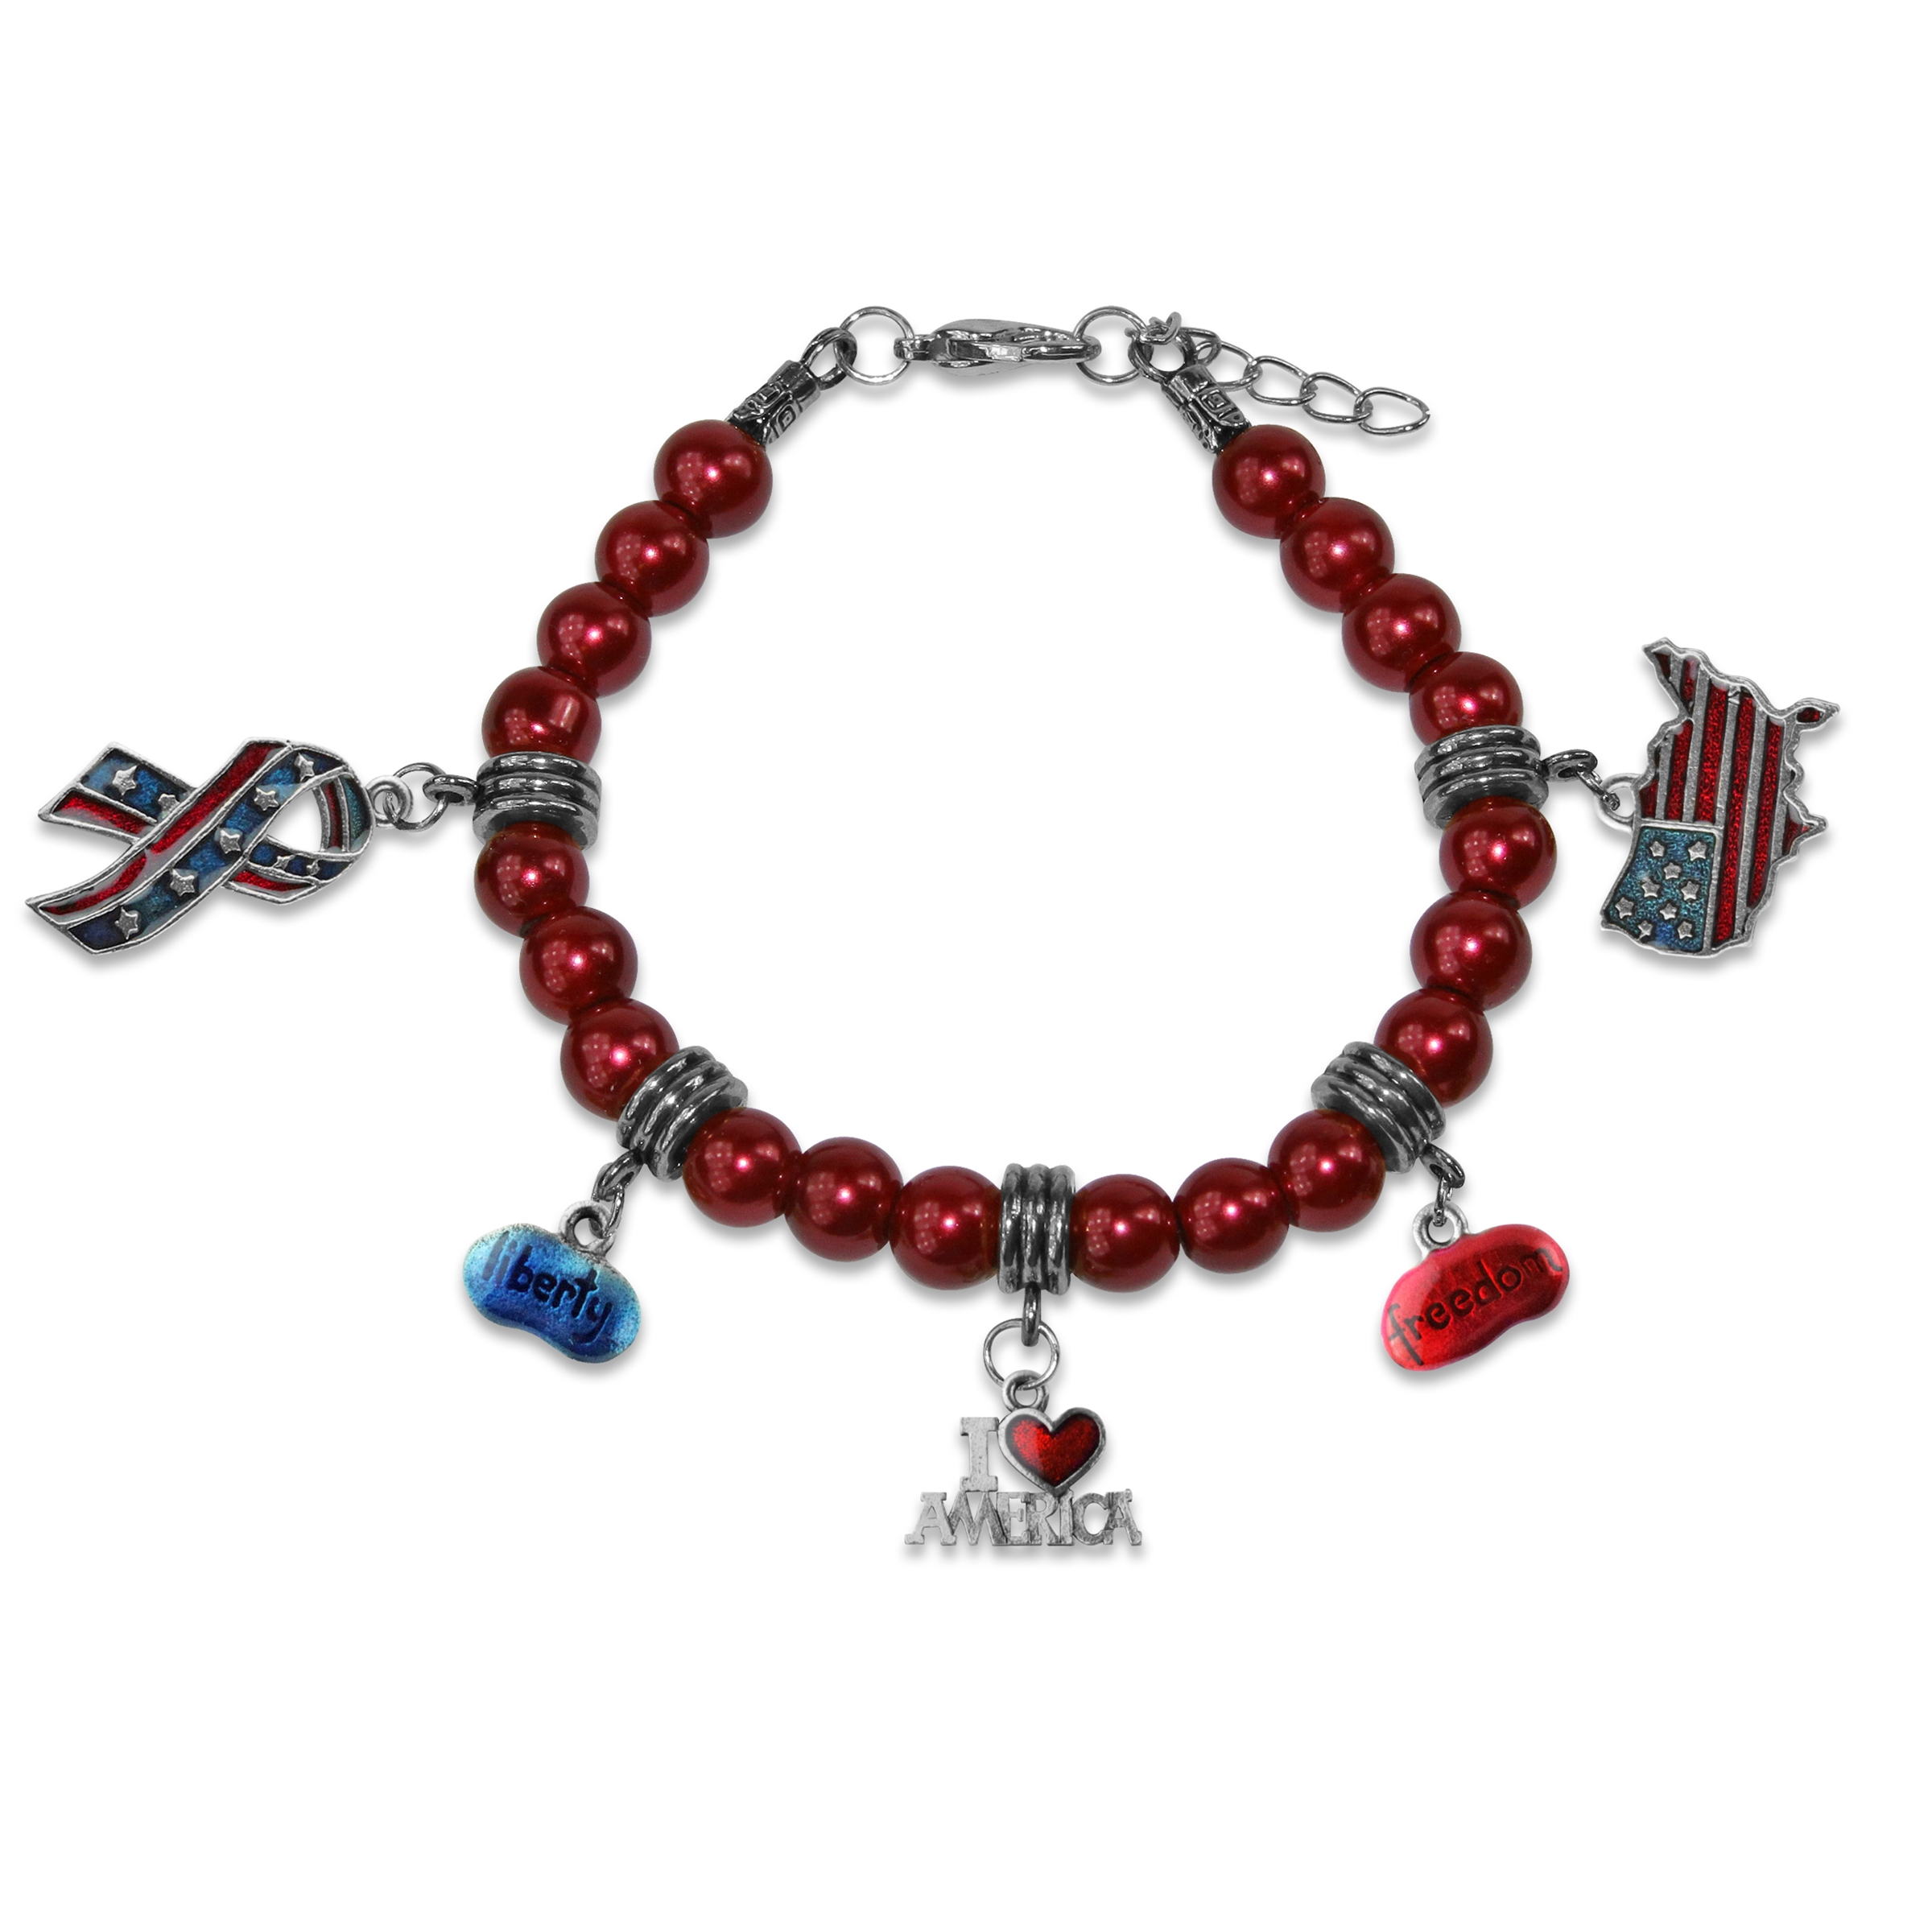 Image of American Patriotic 4th of July Charm Bracelet in Silver